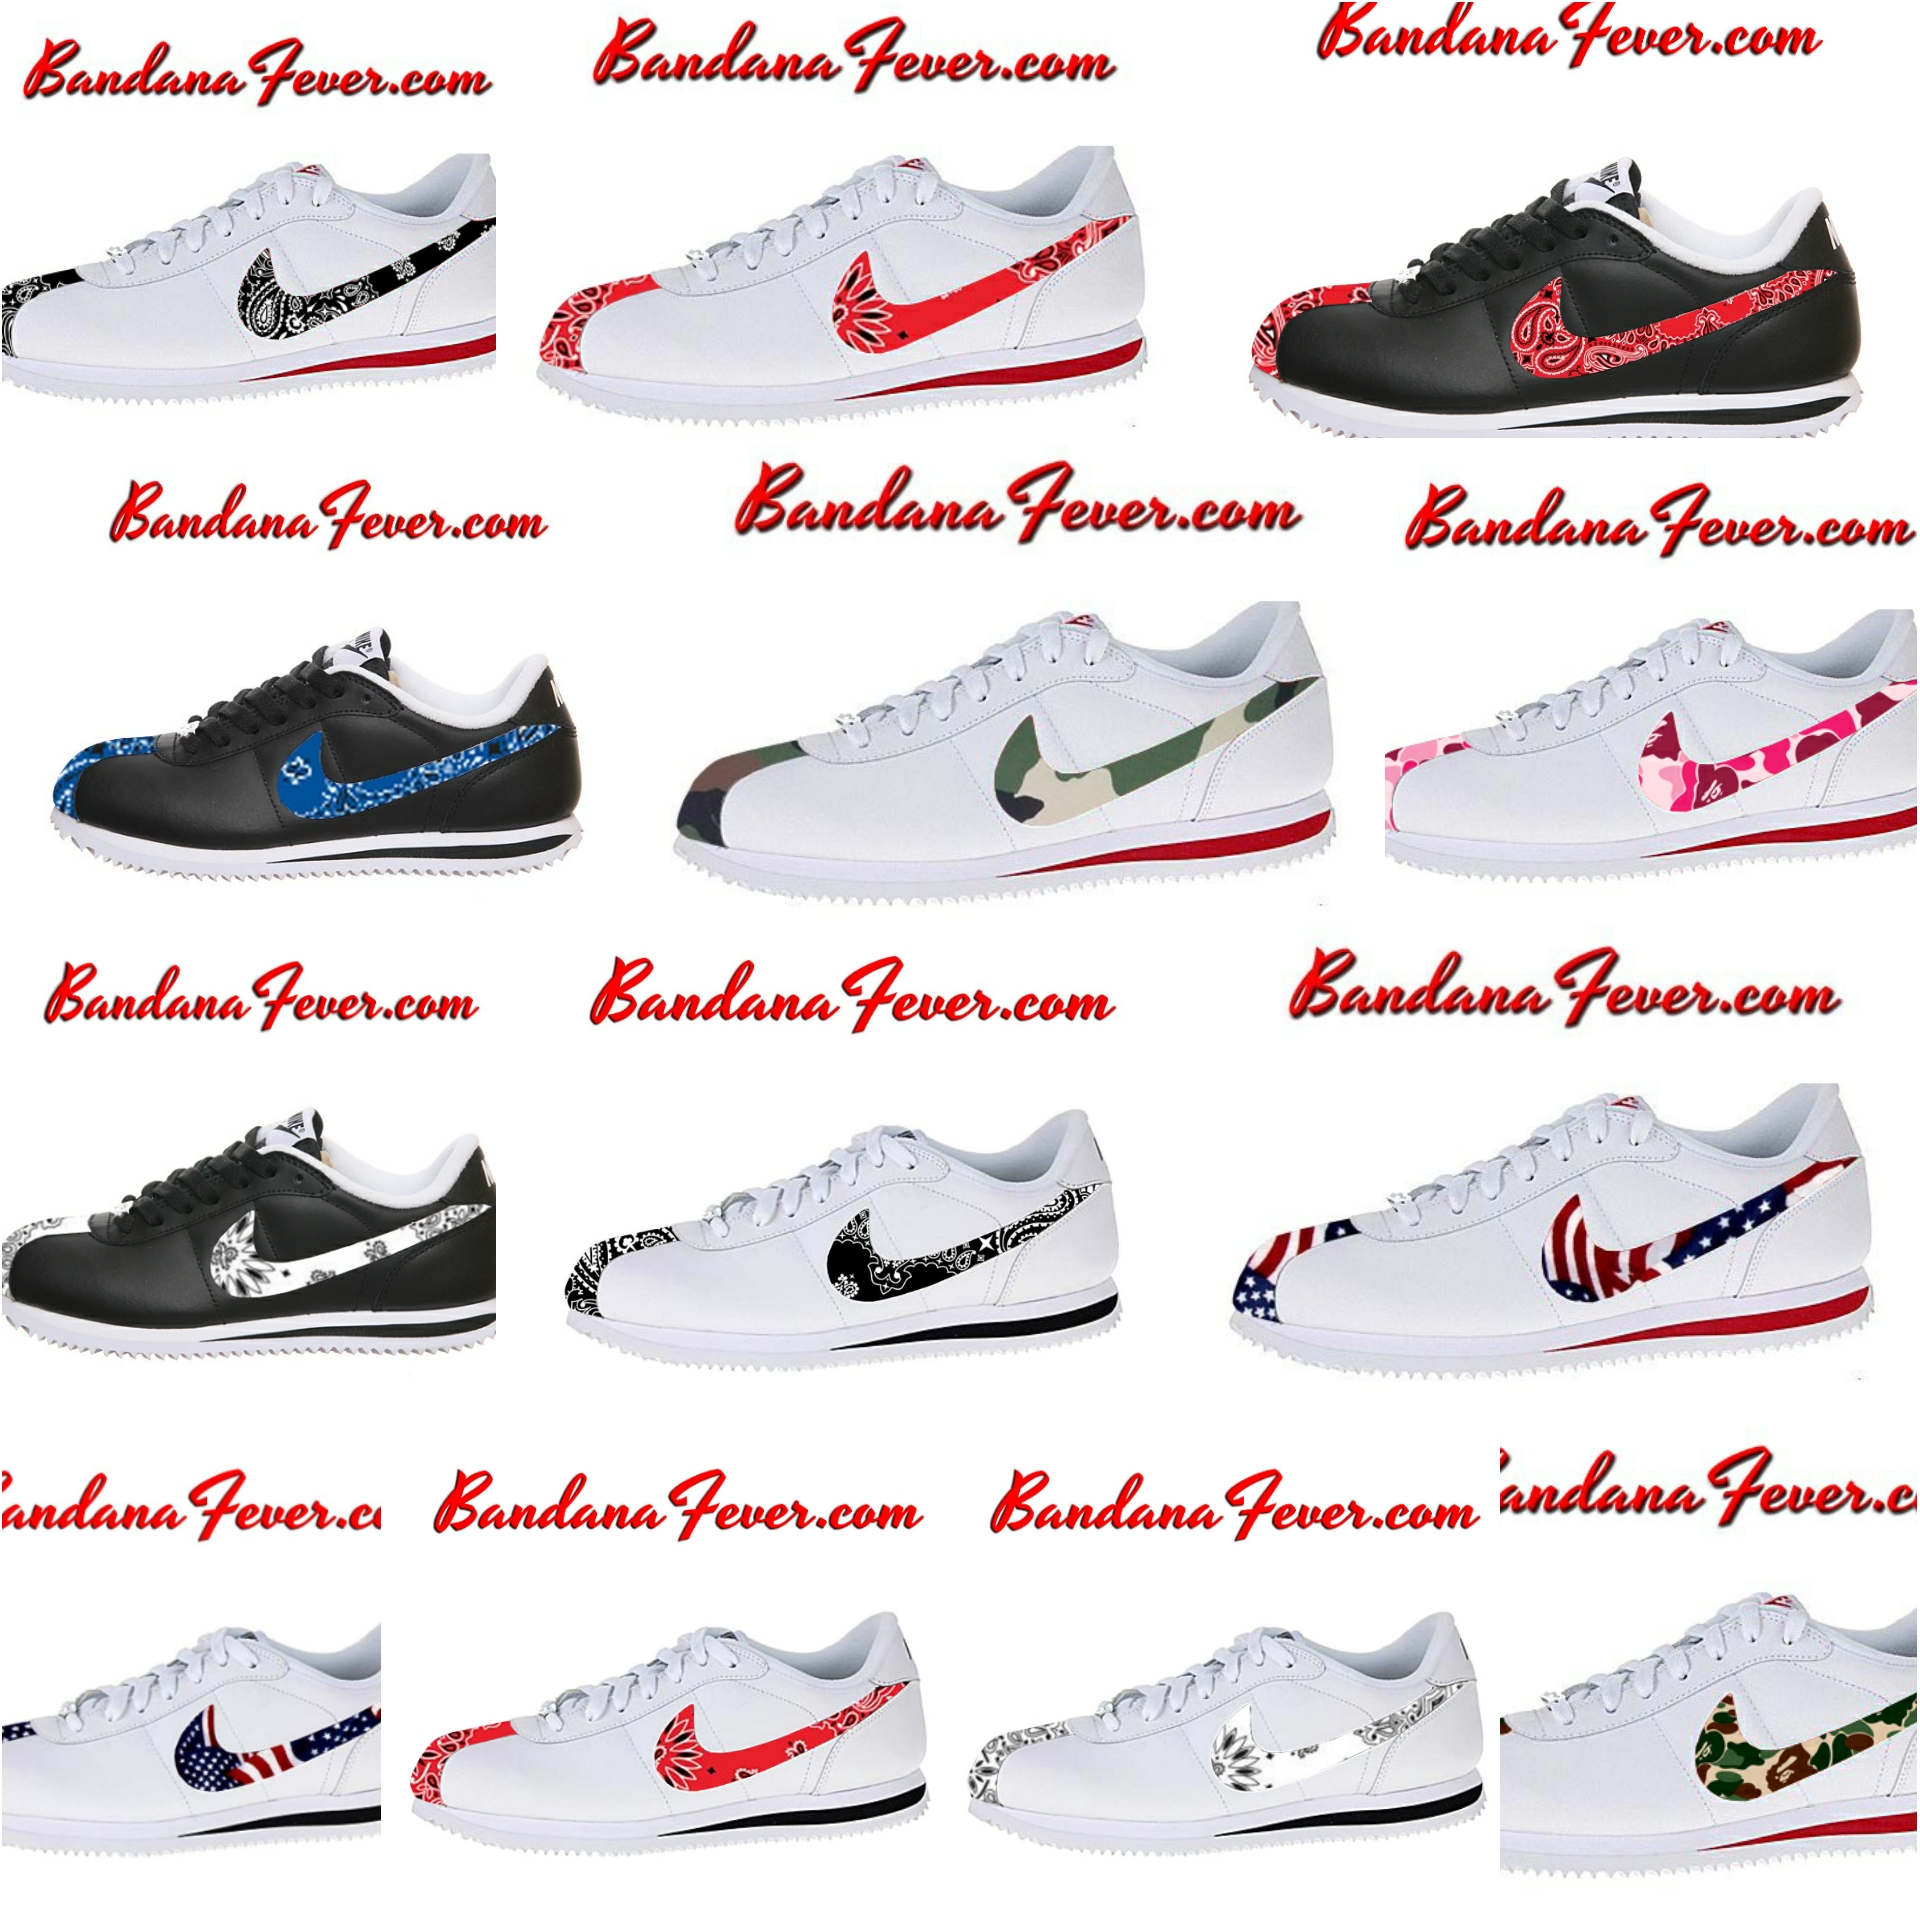 separation shoes 9621b 30a4c australia bandana fever custom bandana nike cortez white navy navy bandana  whole cortez nikes a24ef f5dd5  get design of the day new nike cortez  styles ...